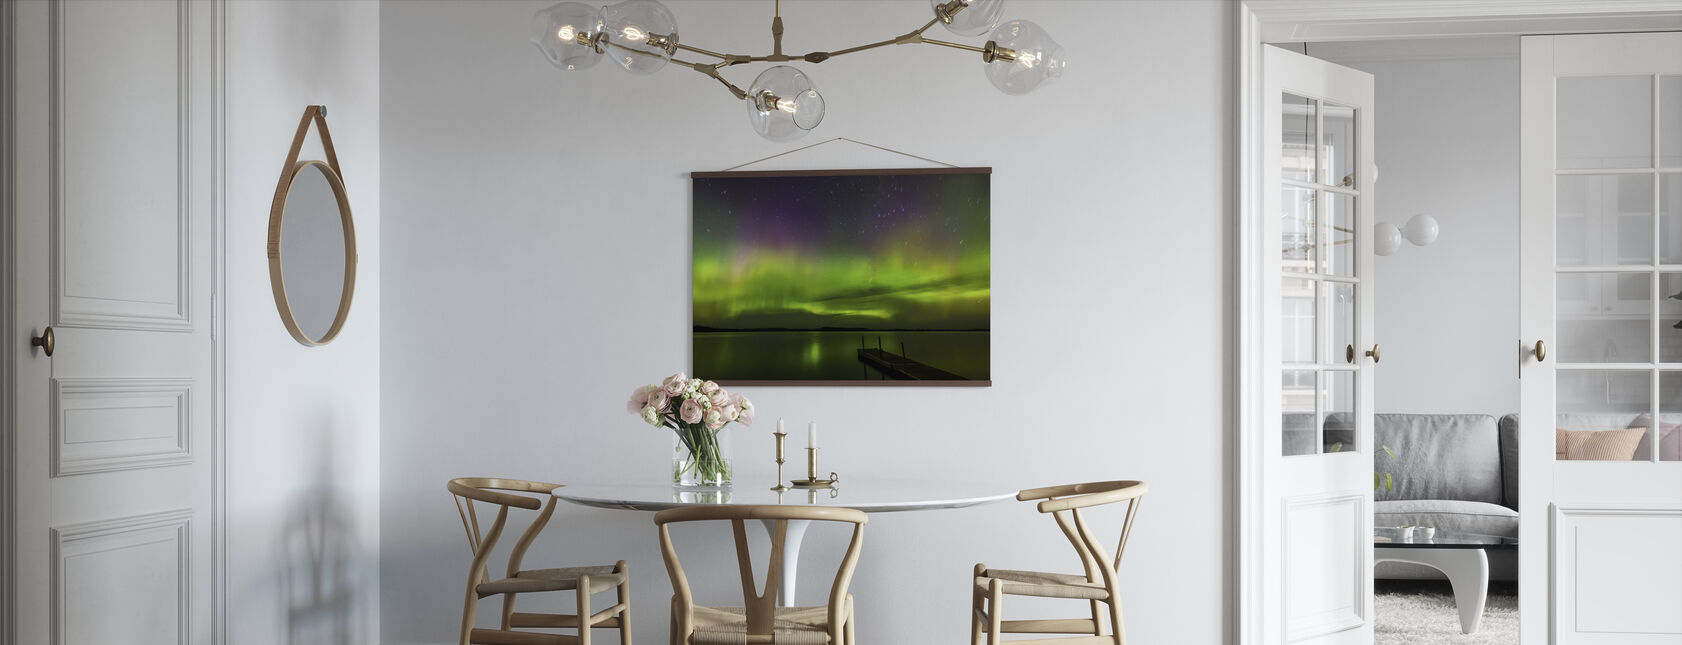 Aurora Borealis over Burntside Lake - Poster - Kitchen